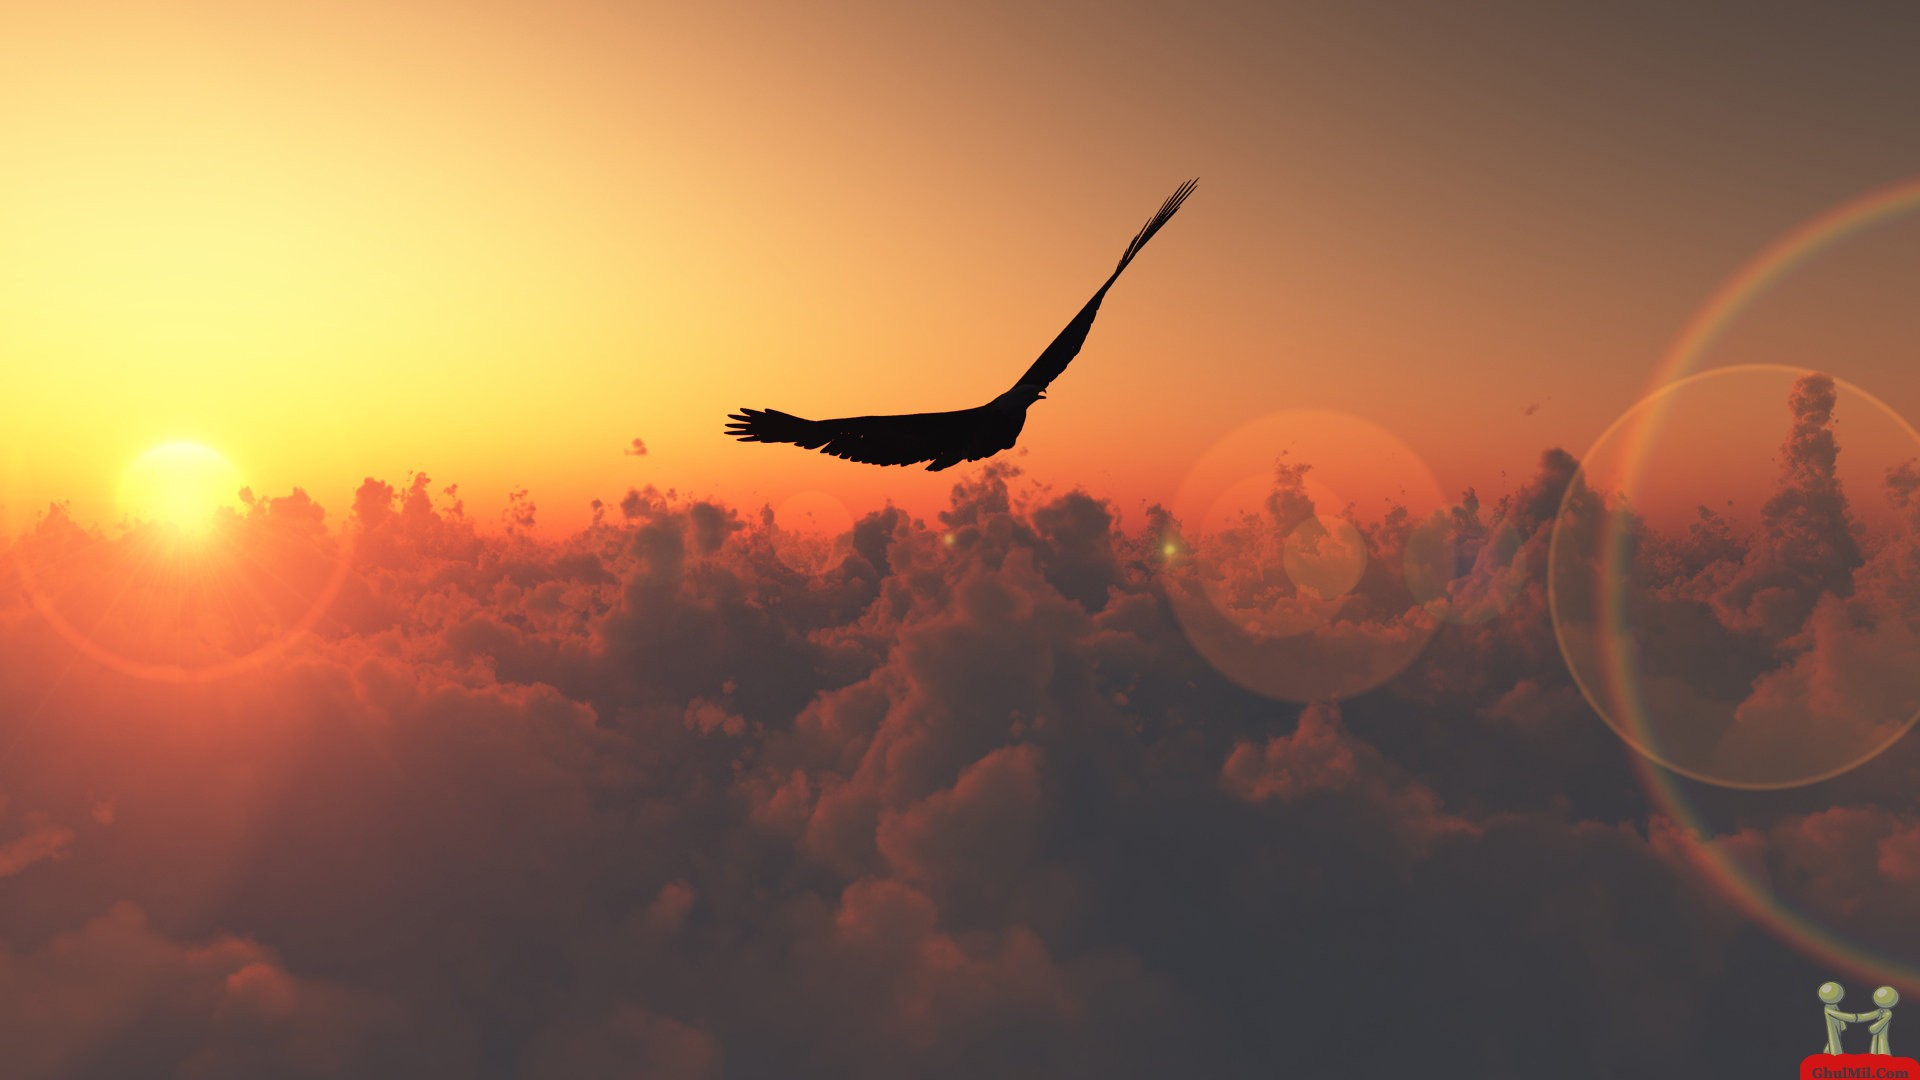 Flying Sunset Eagle HD Wallpaper HD Wallpapers Download 1920x1080